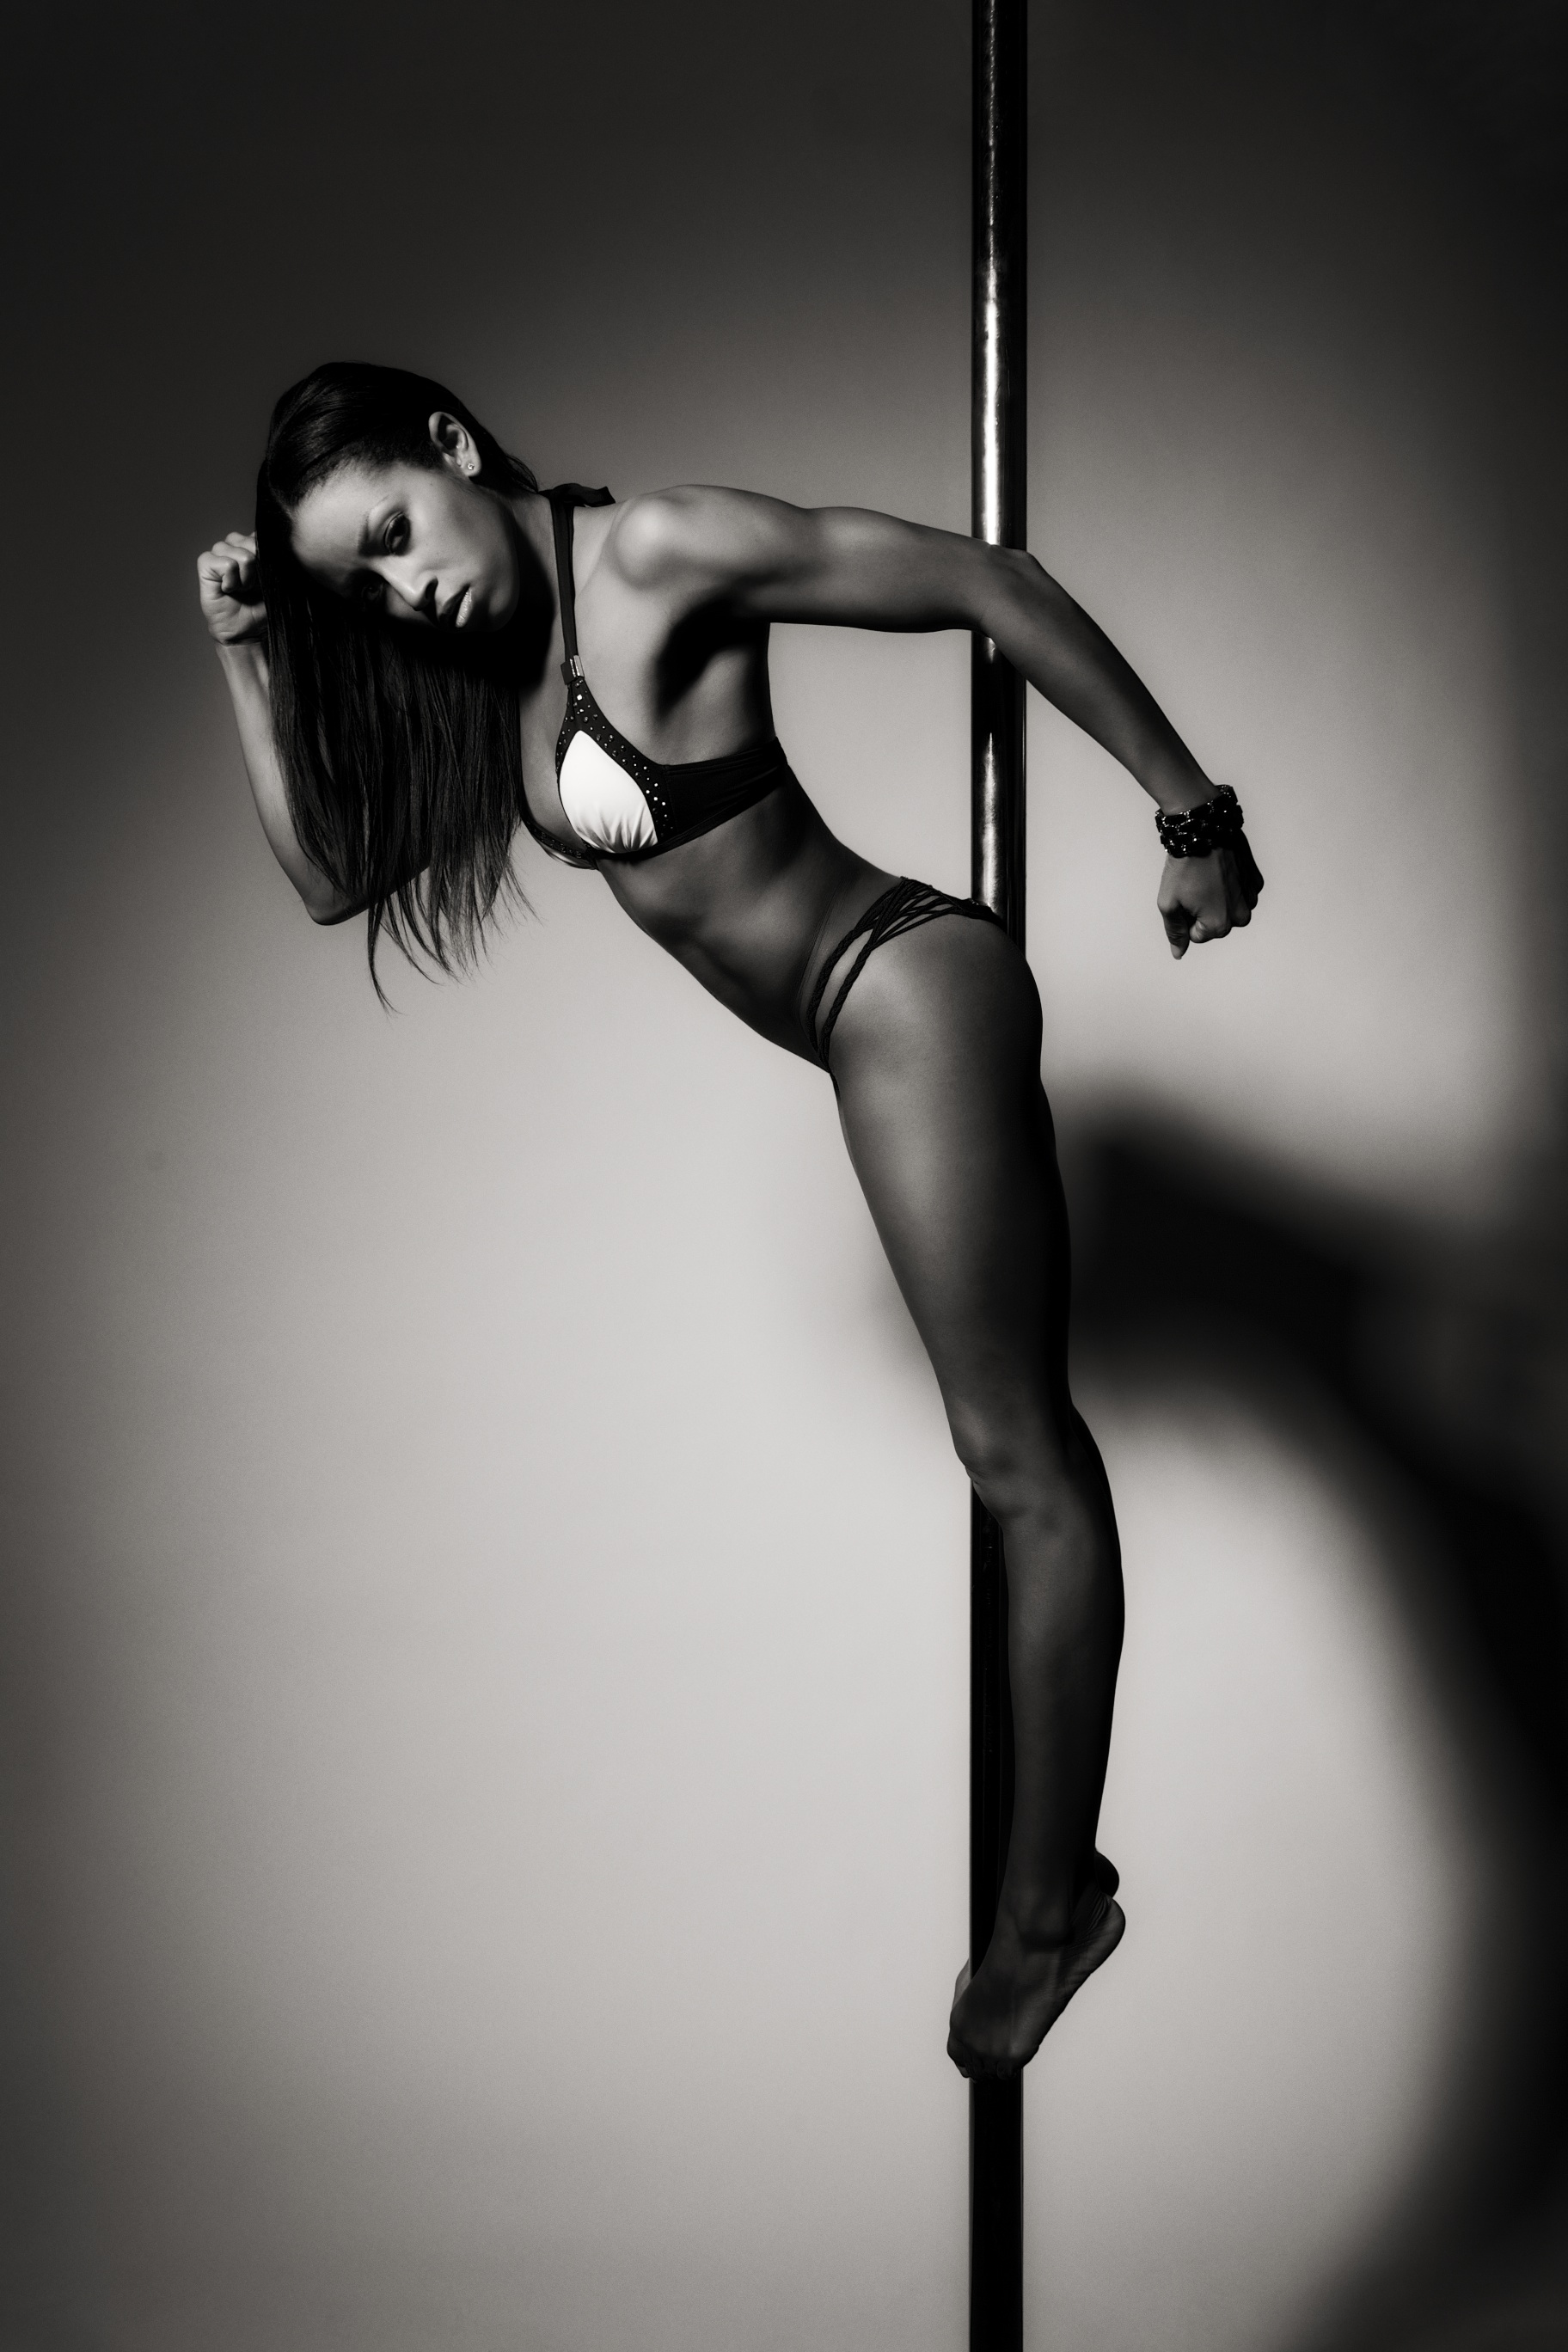 Nicole ThePole in illusionist pose